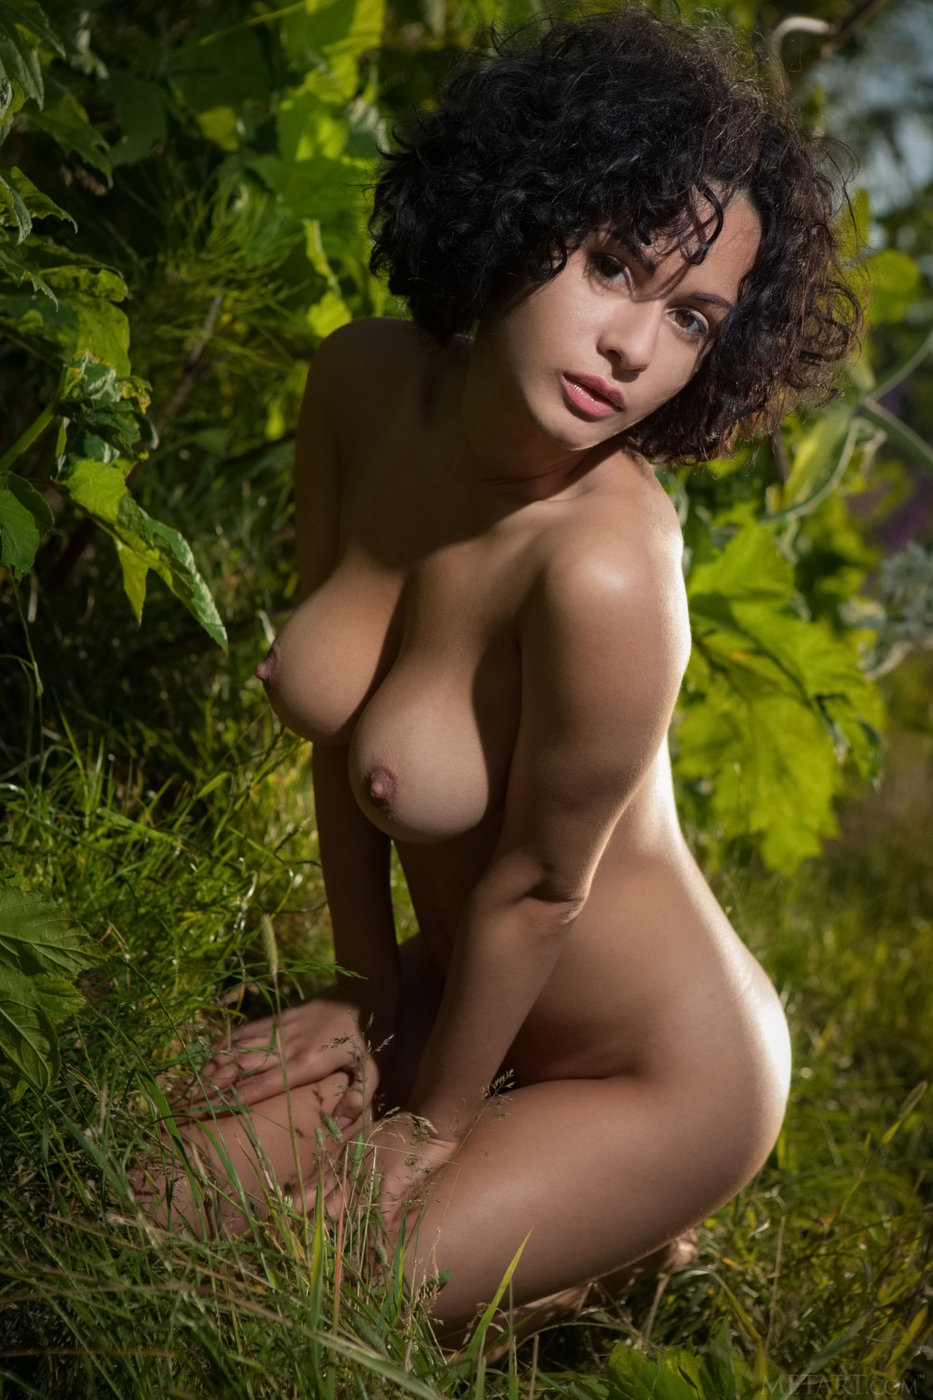 Curly-haired brunette in a see-through top undressing among the trees